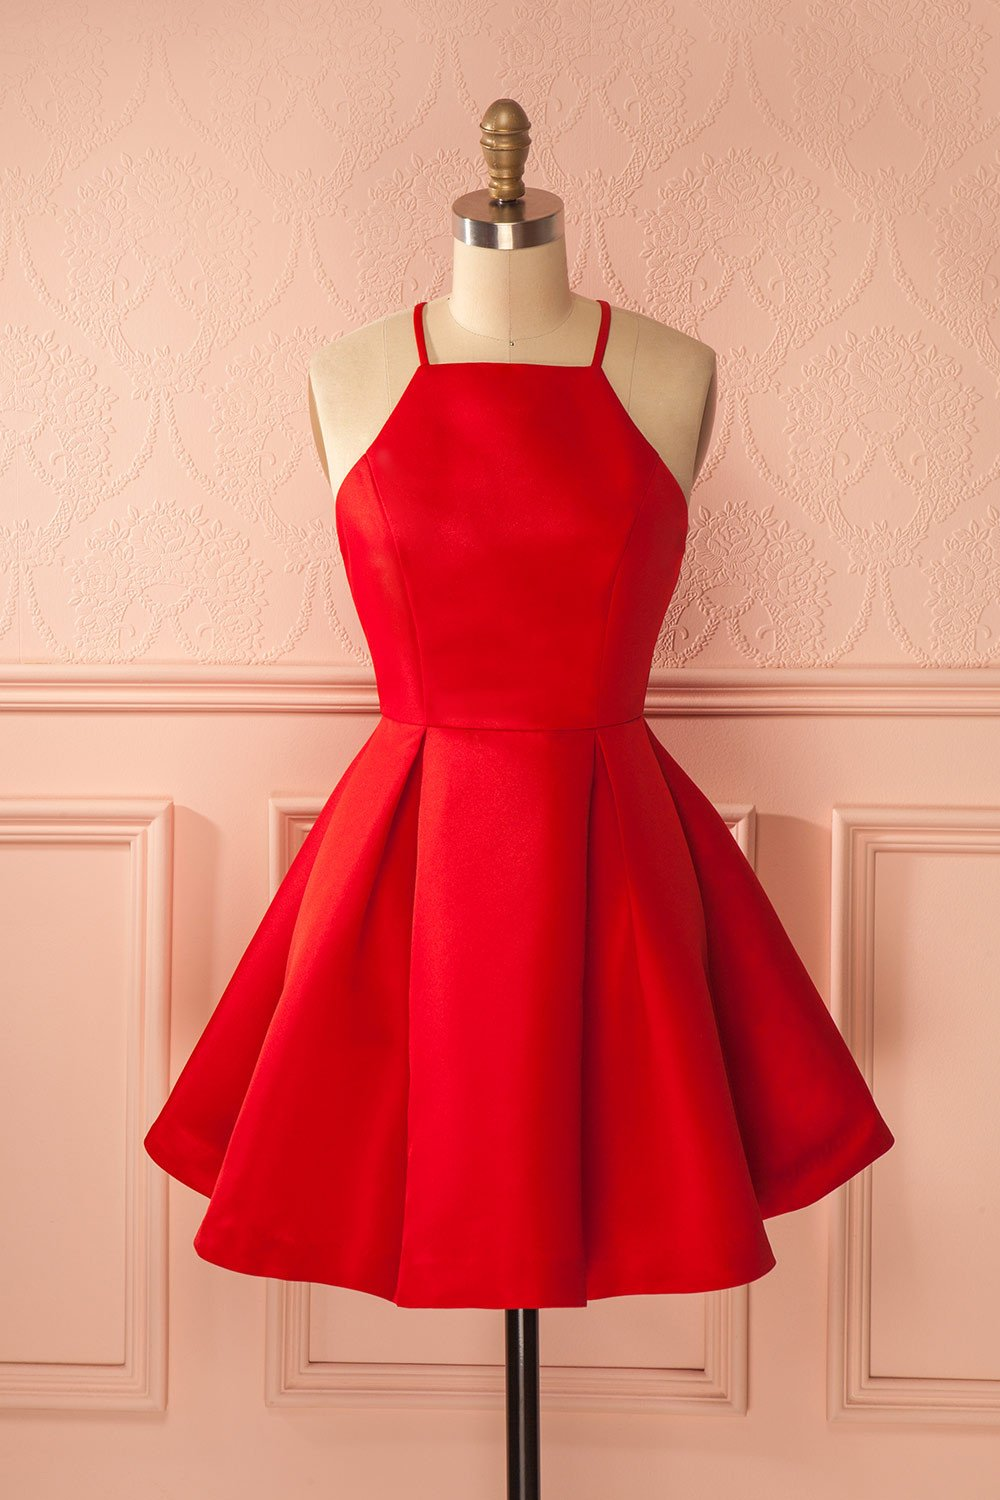 Cute Short Red Prom Dresses,A Line Homecoming Dresses,Popular